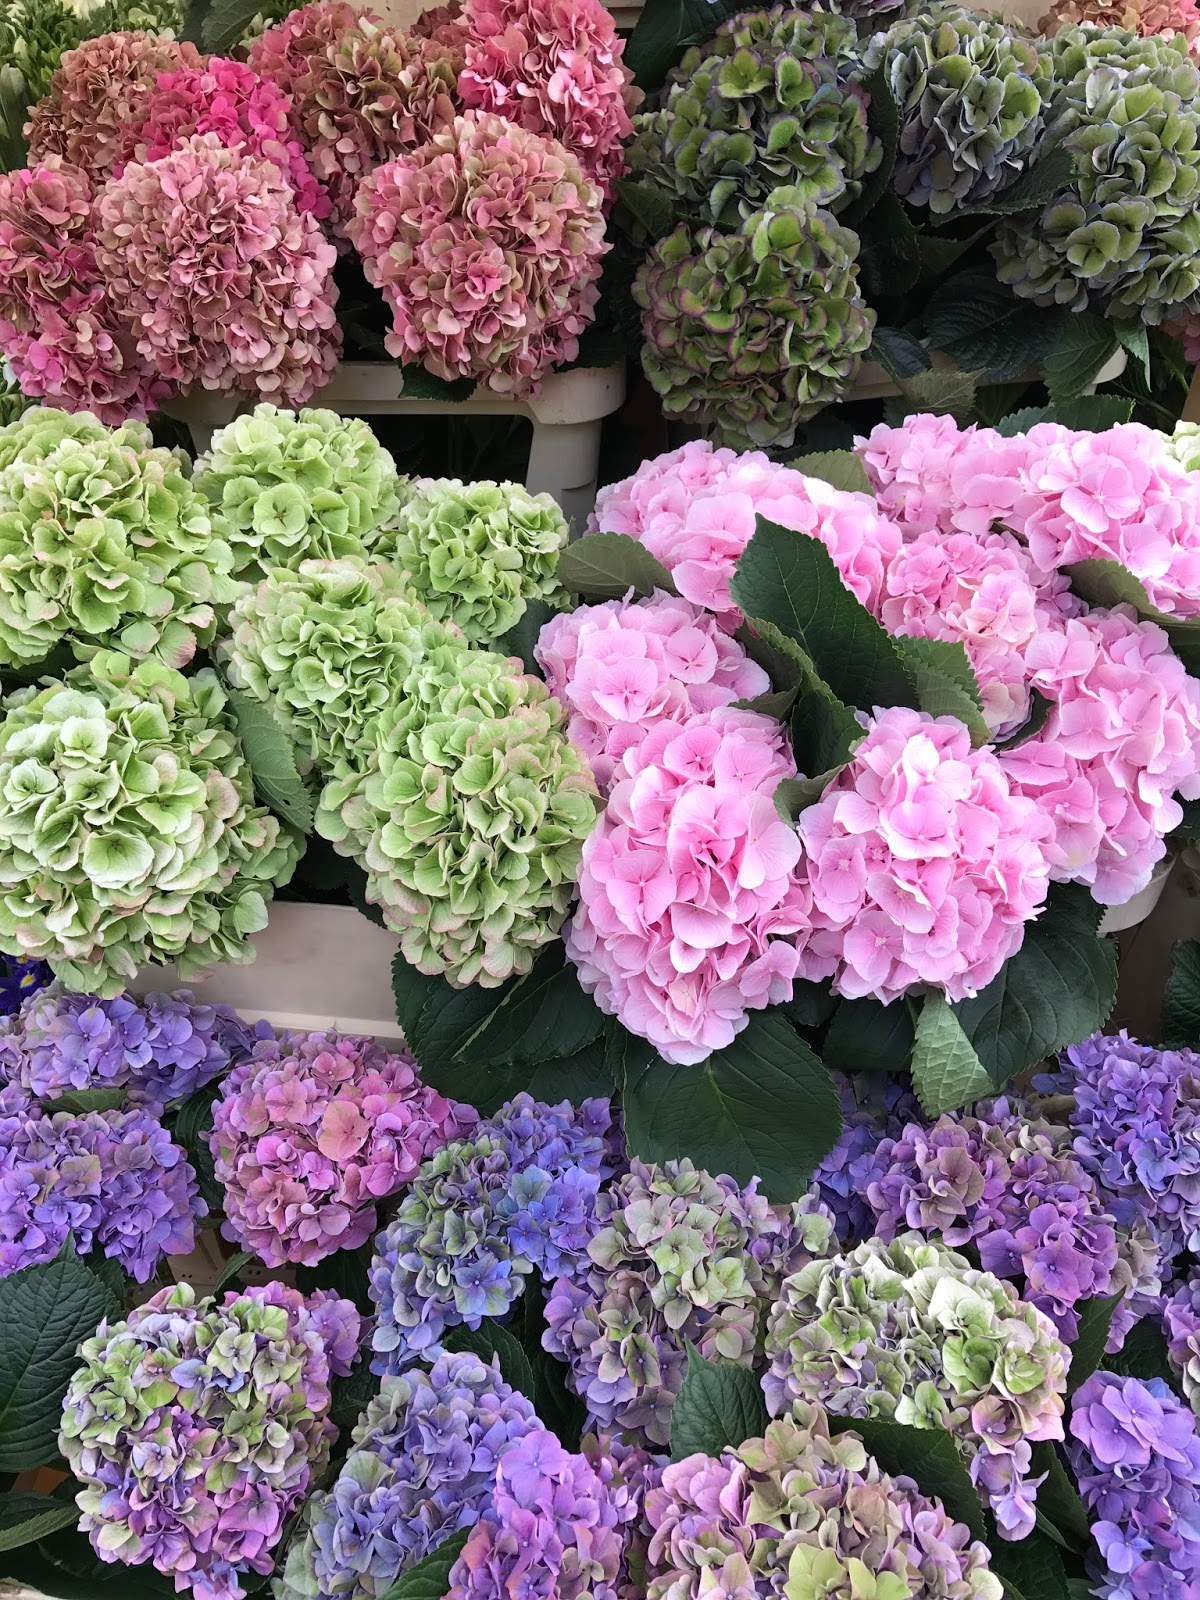 Hydrangeas At Columbia Road Flower Market And The First Visit To